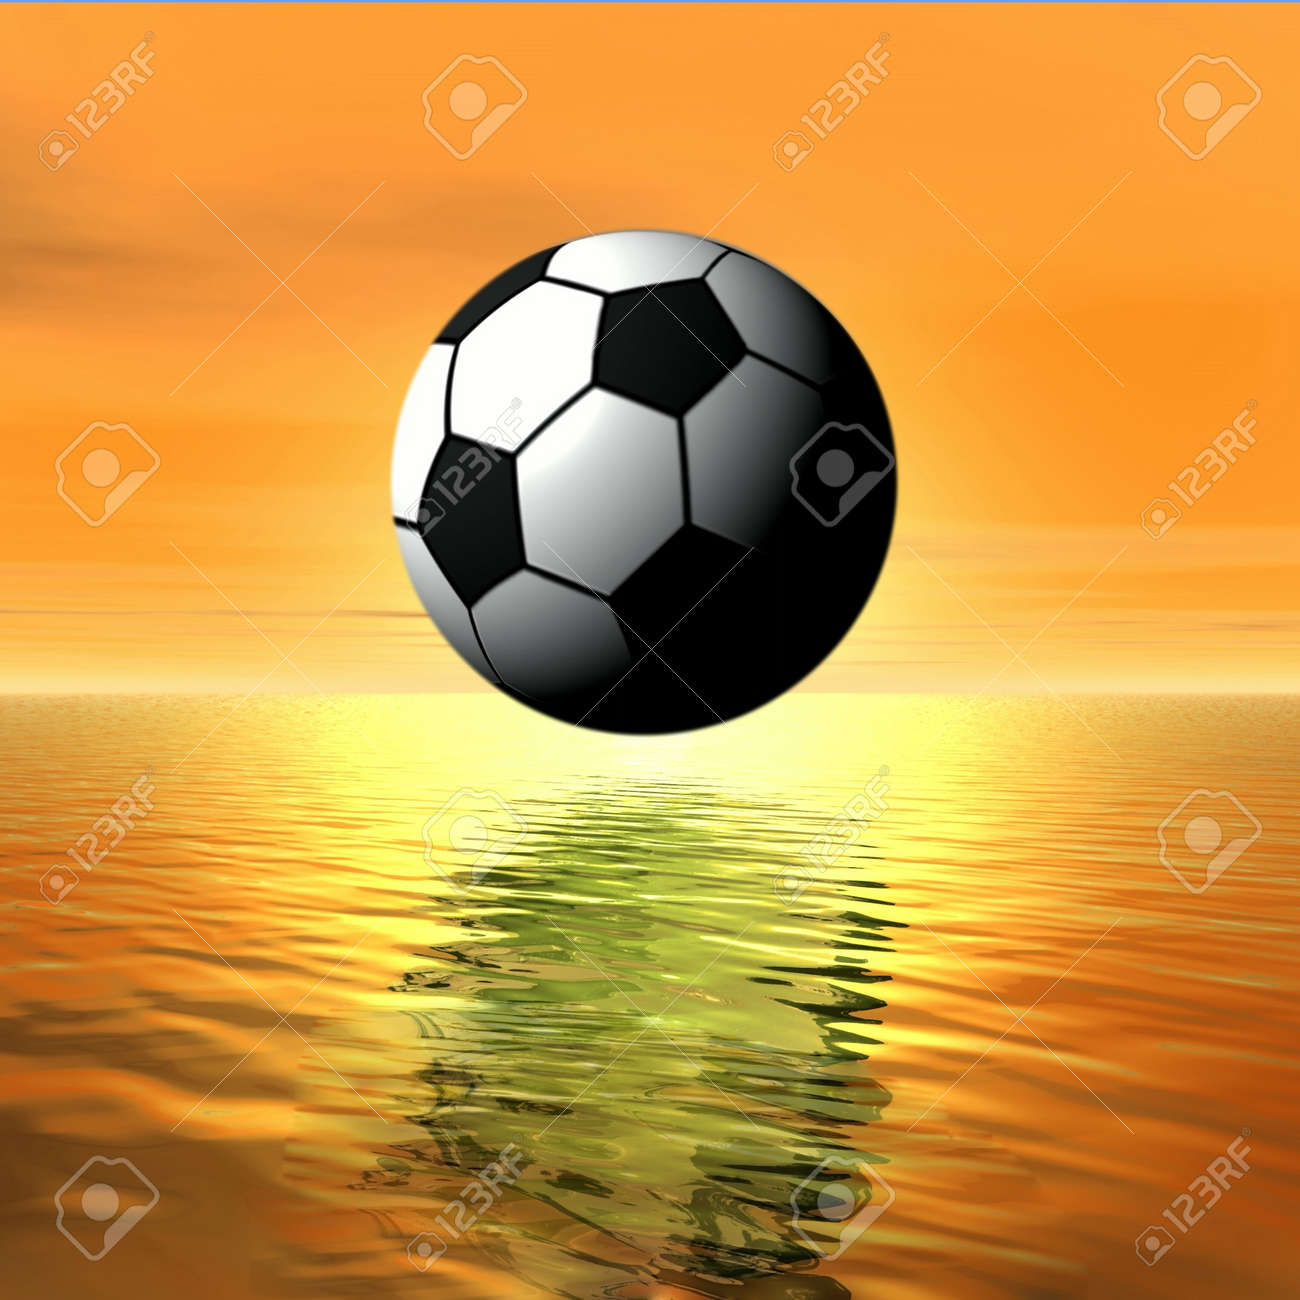 Landscape with football Stock Photo - 4460407